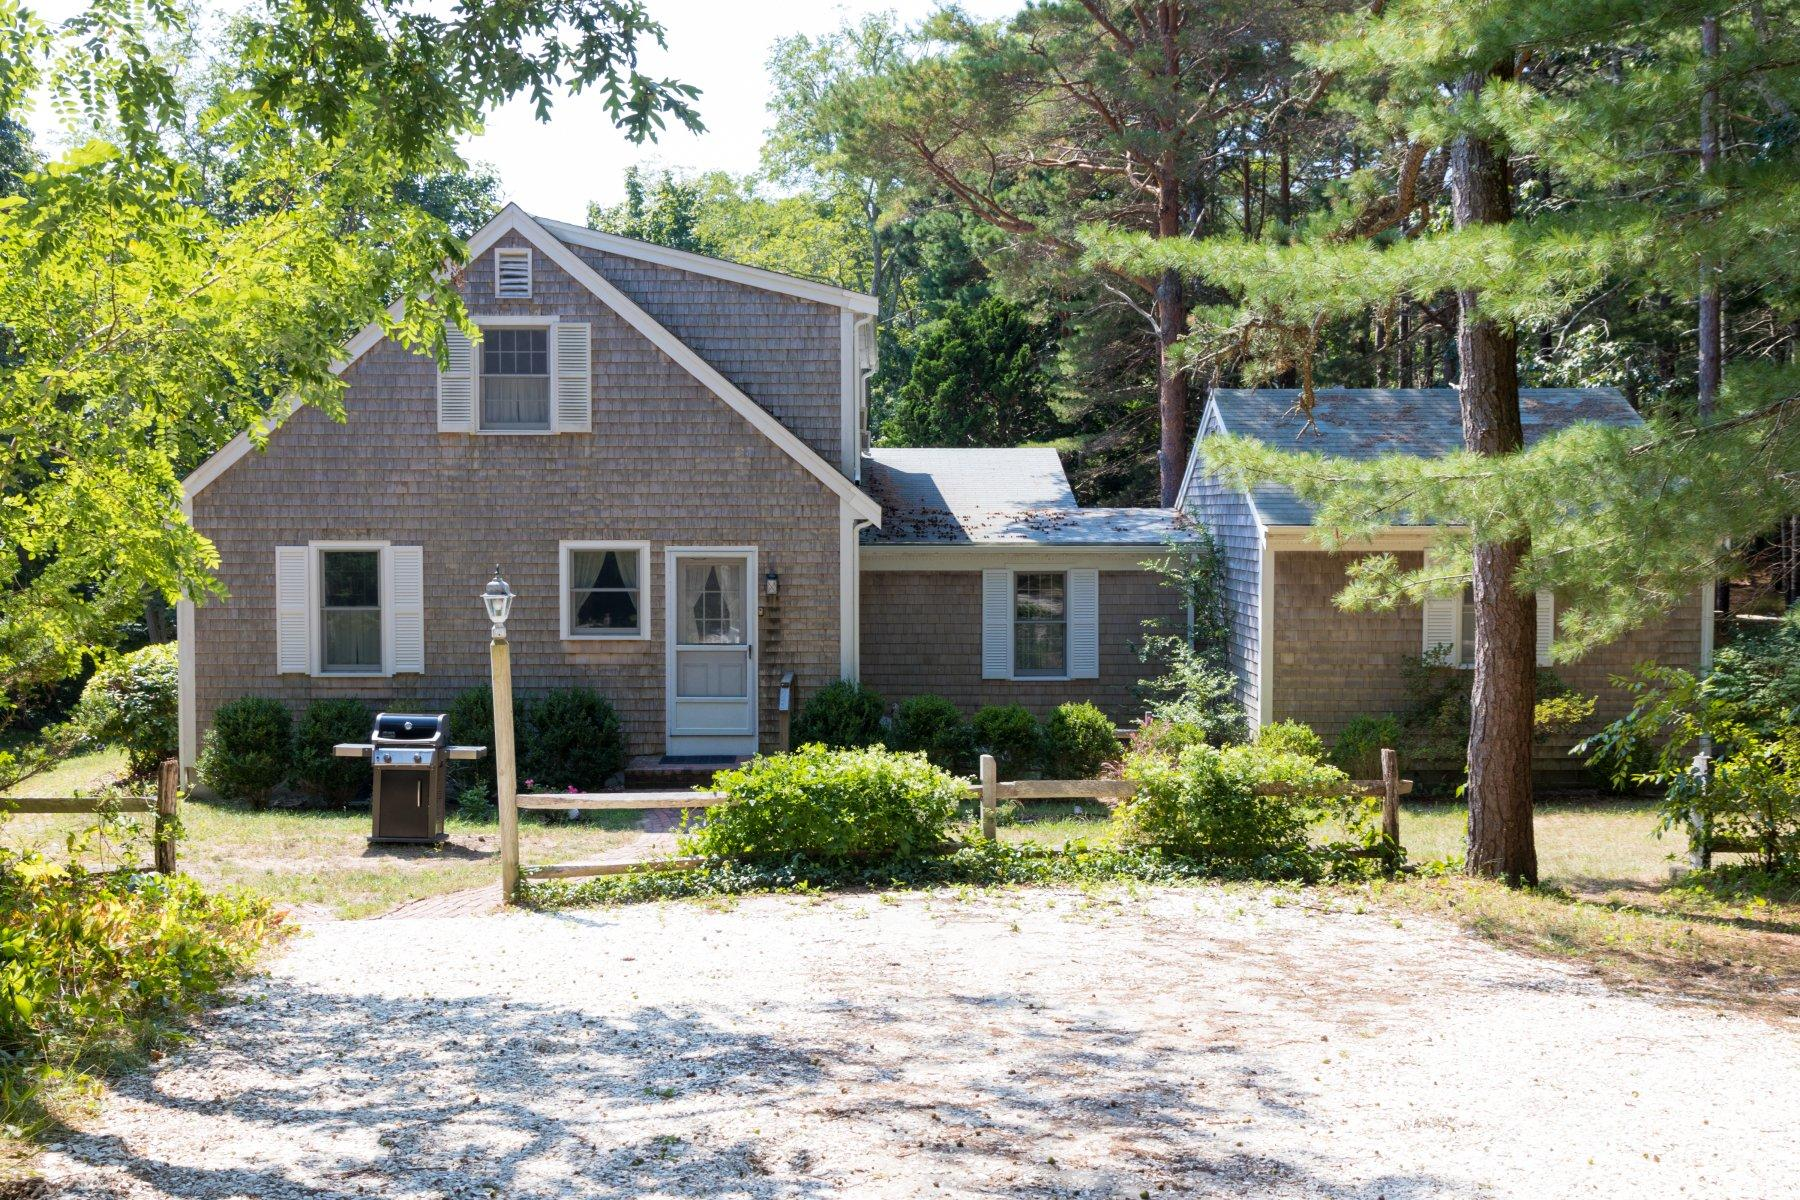 Single Family Home for Active at 2155 Old Kings Highway, Wellfleet, MA 2155 Old Kings Highway Wellfleet, Massachusetts 02667 United States